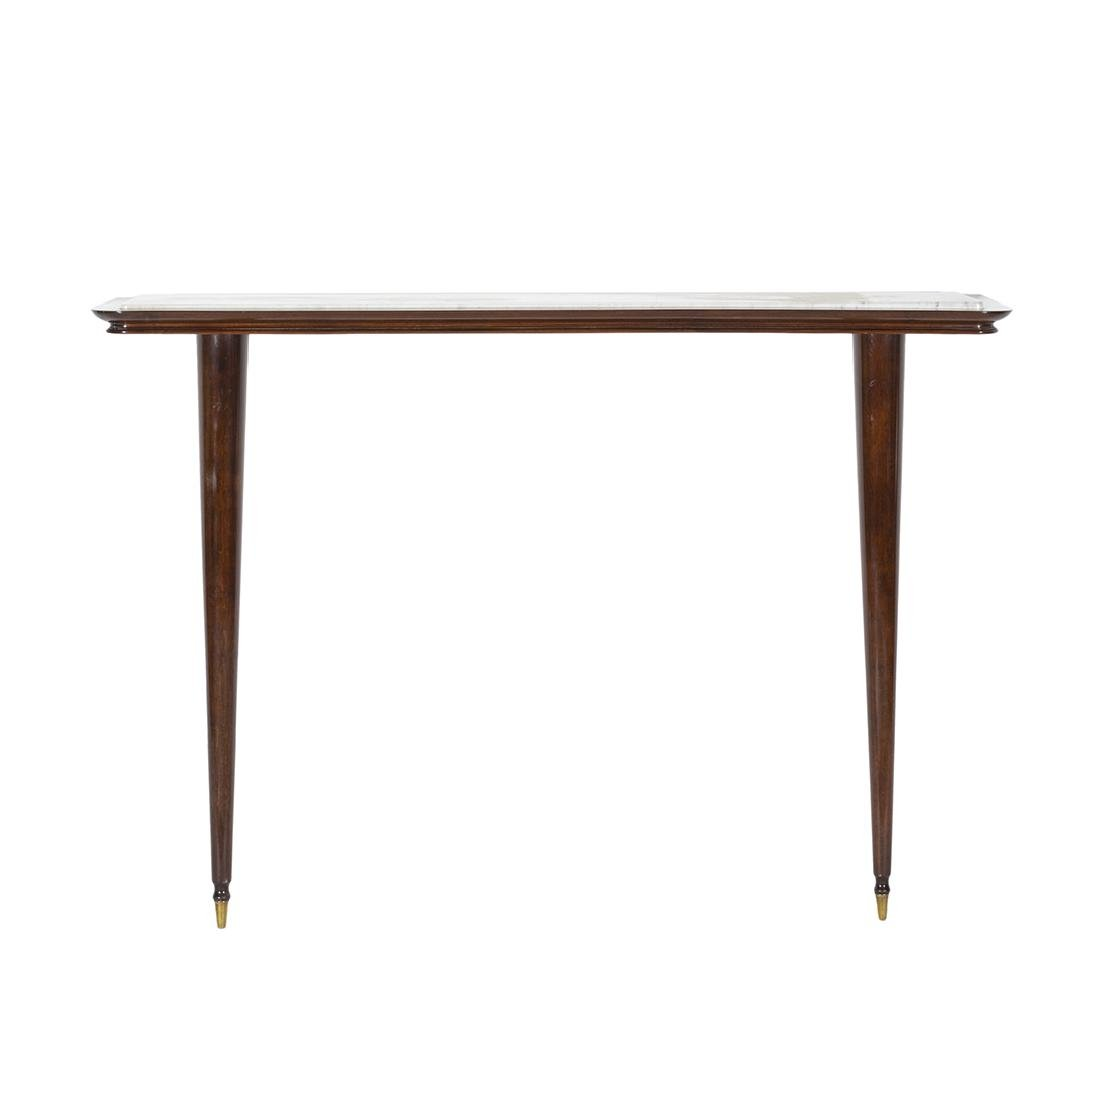 Italian Wall Mount Console Table